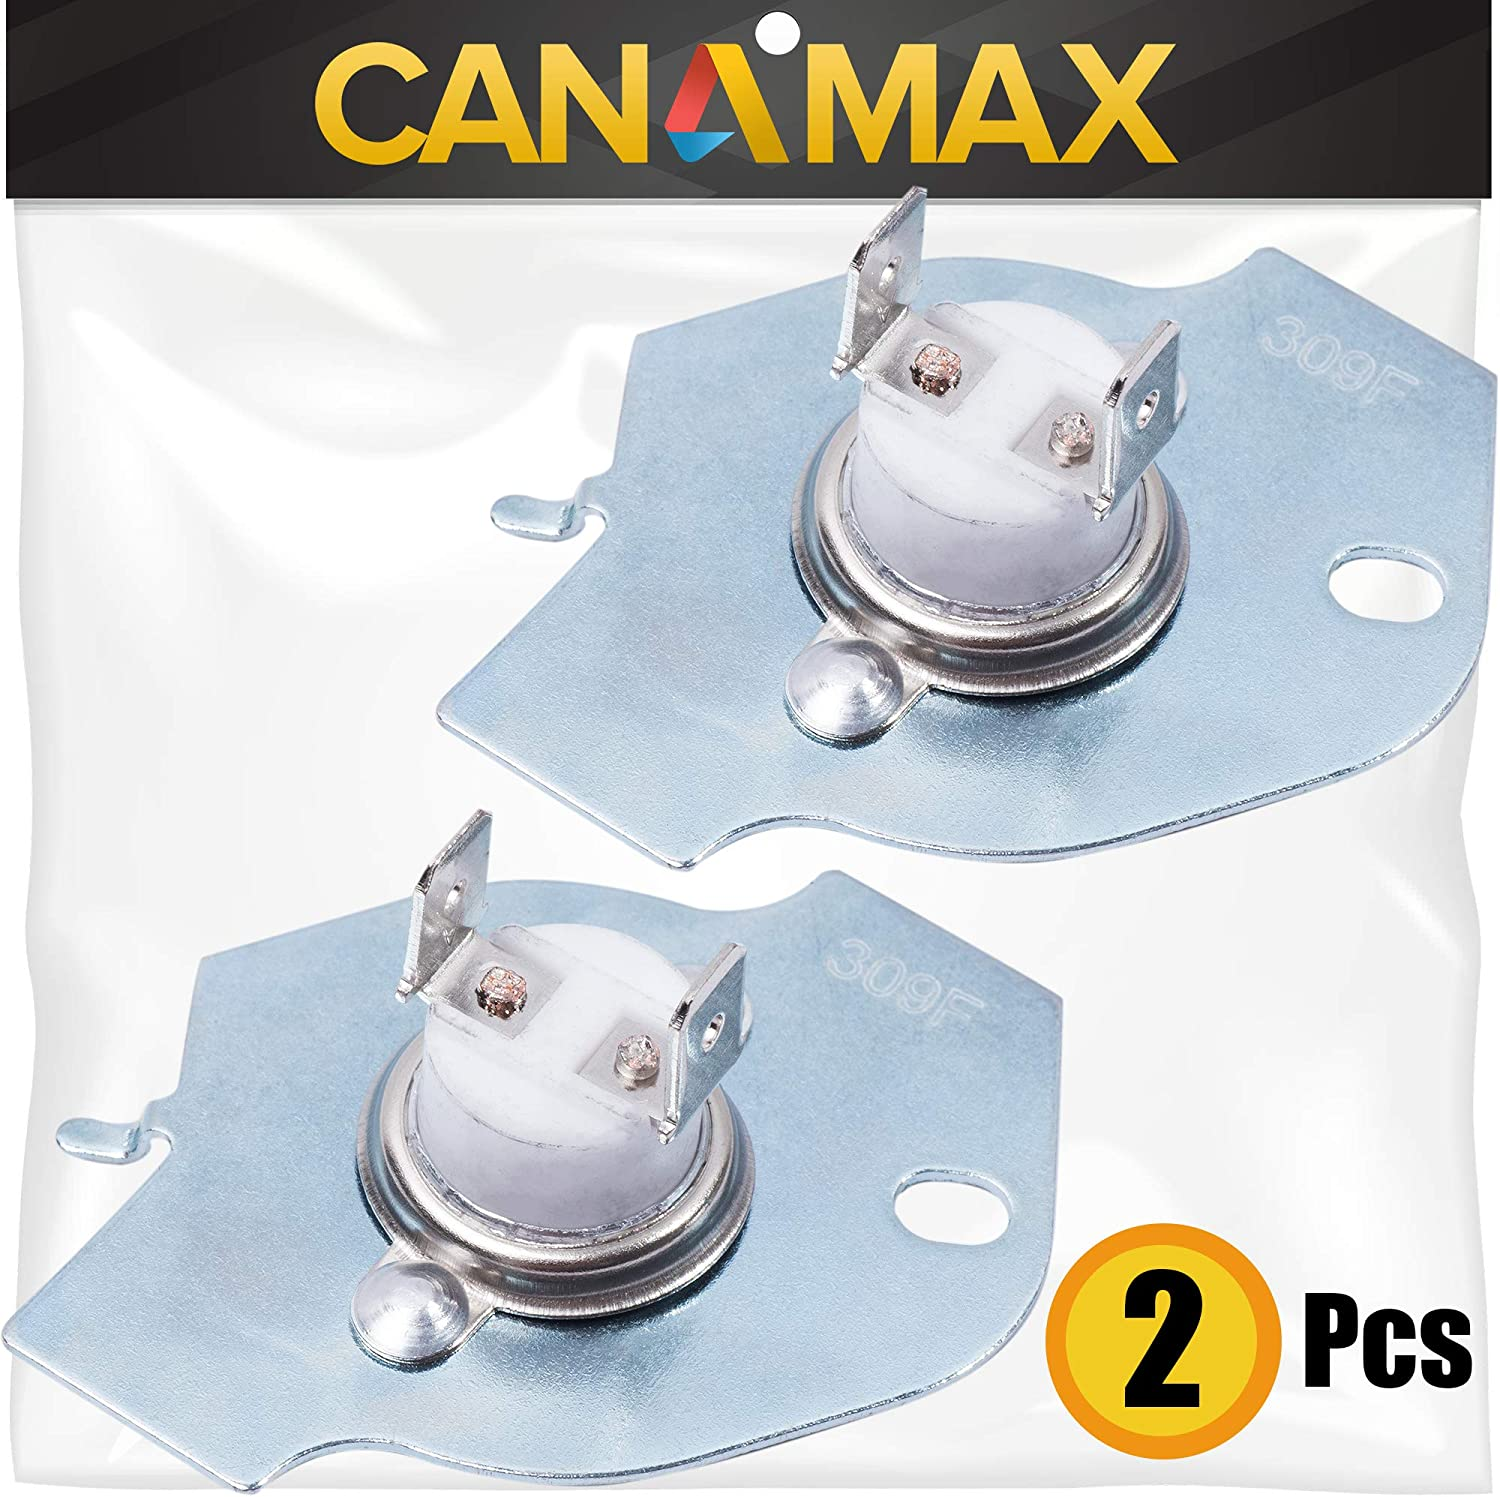 3977393 Dryer Thermal Cut-Off Fuse Premium Replacement Part by Canamax - Compatible with Whirlpool and Kenmore Dryers - Replaces WP3977393, 3399848, AP3094244 - PACK OF 2